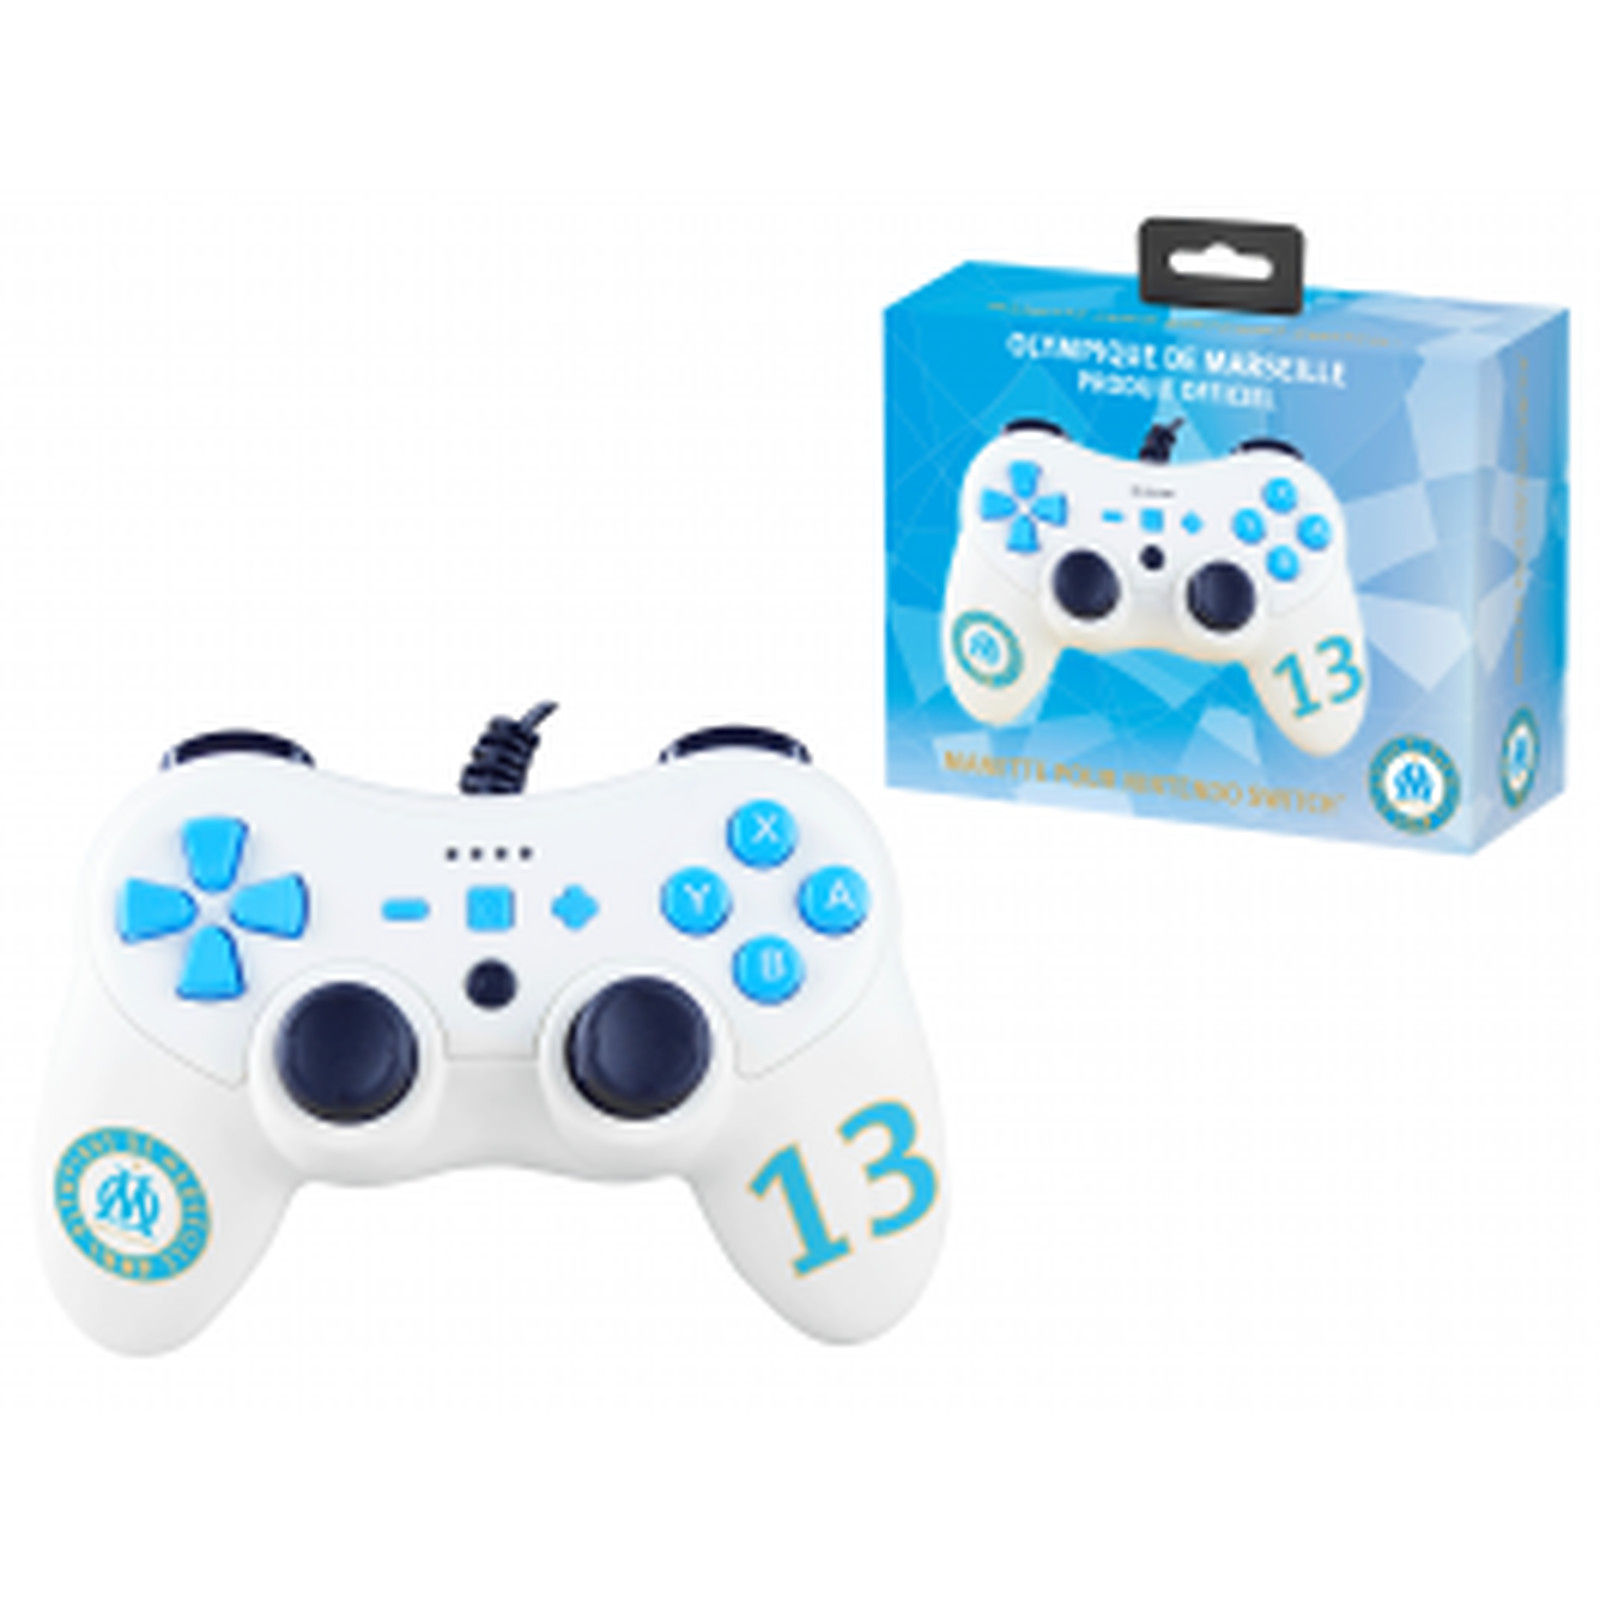 OM Olympique de Marseille Pro S wired controller Nintendo Switch Switch